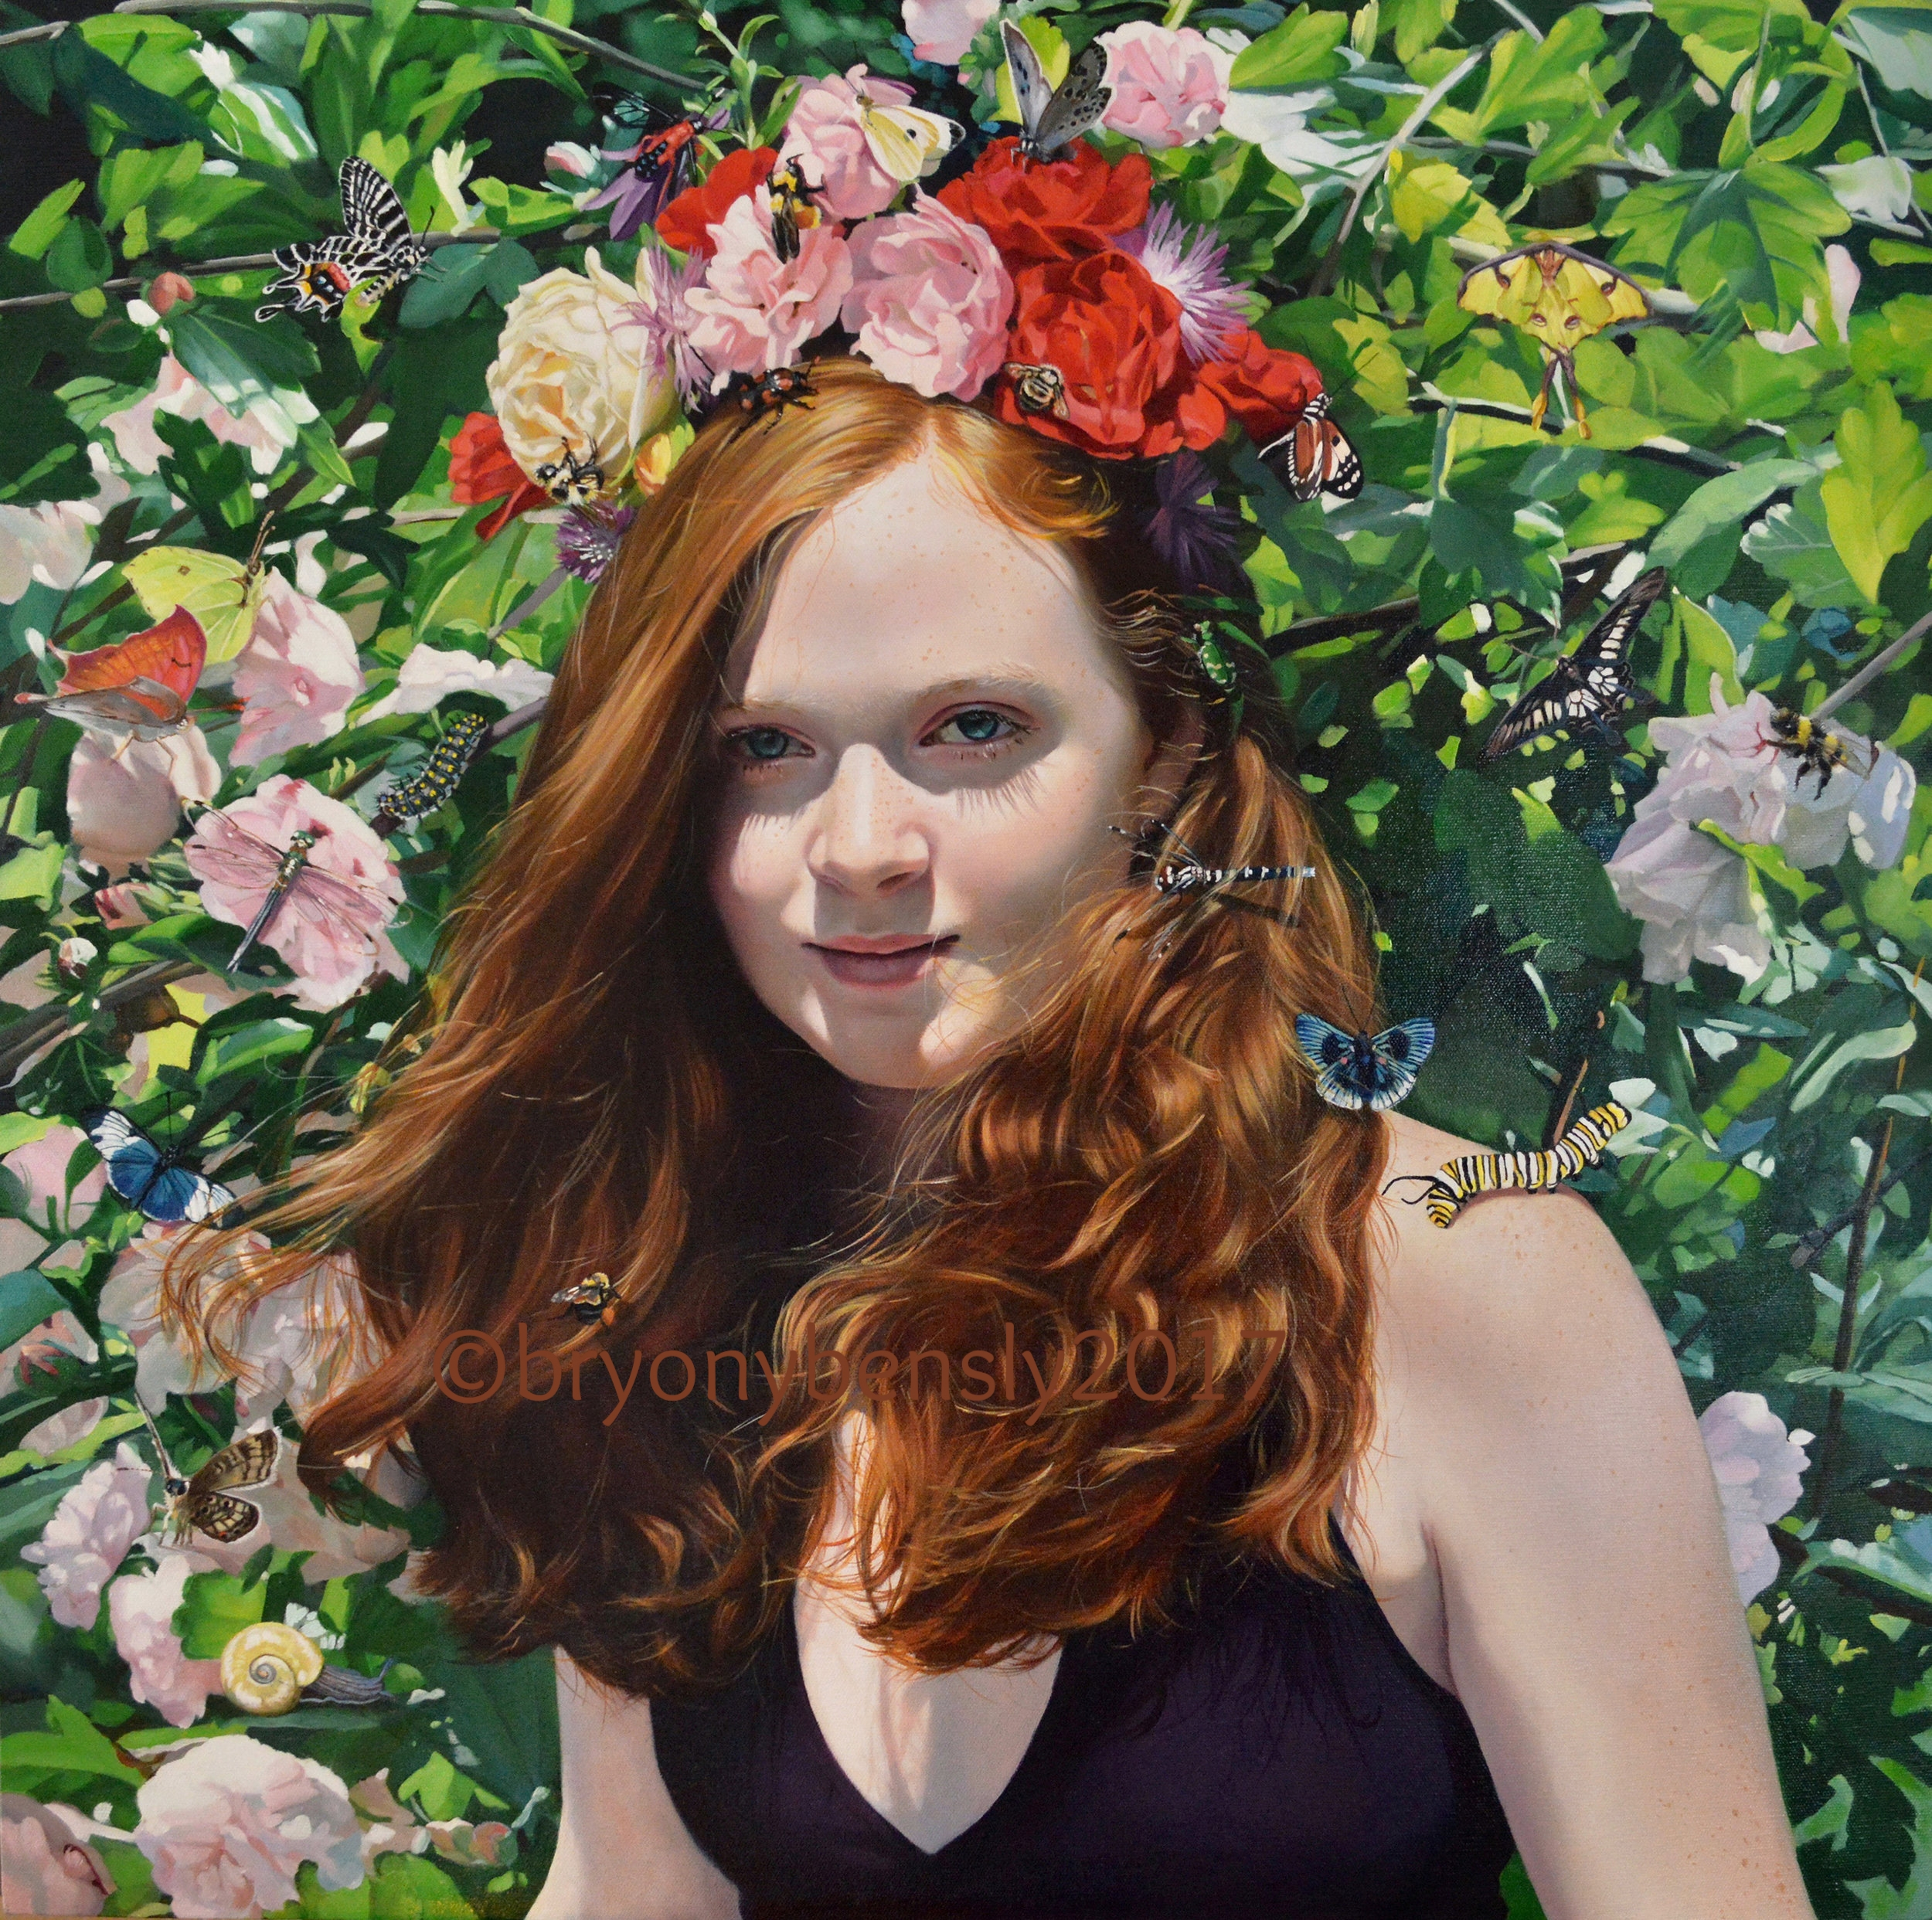 """When she wears flowers in her hair, 30 x 30 """", oil on canvas"""